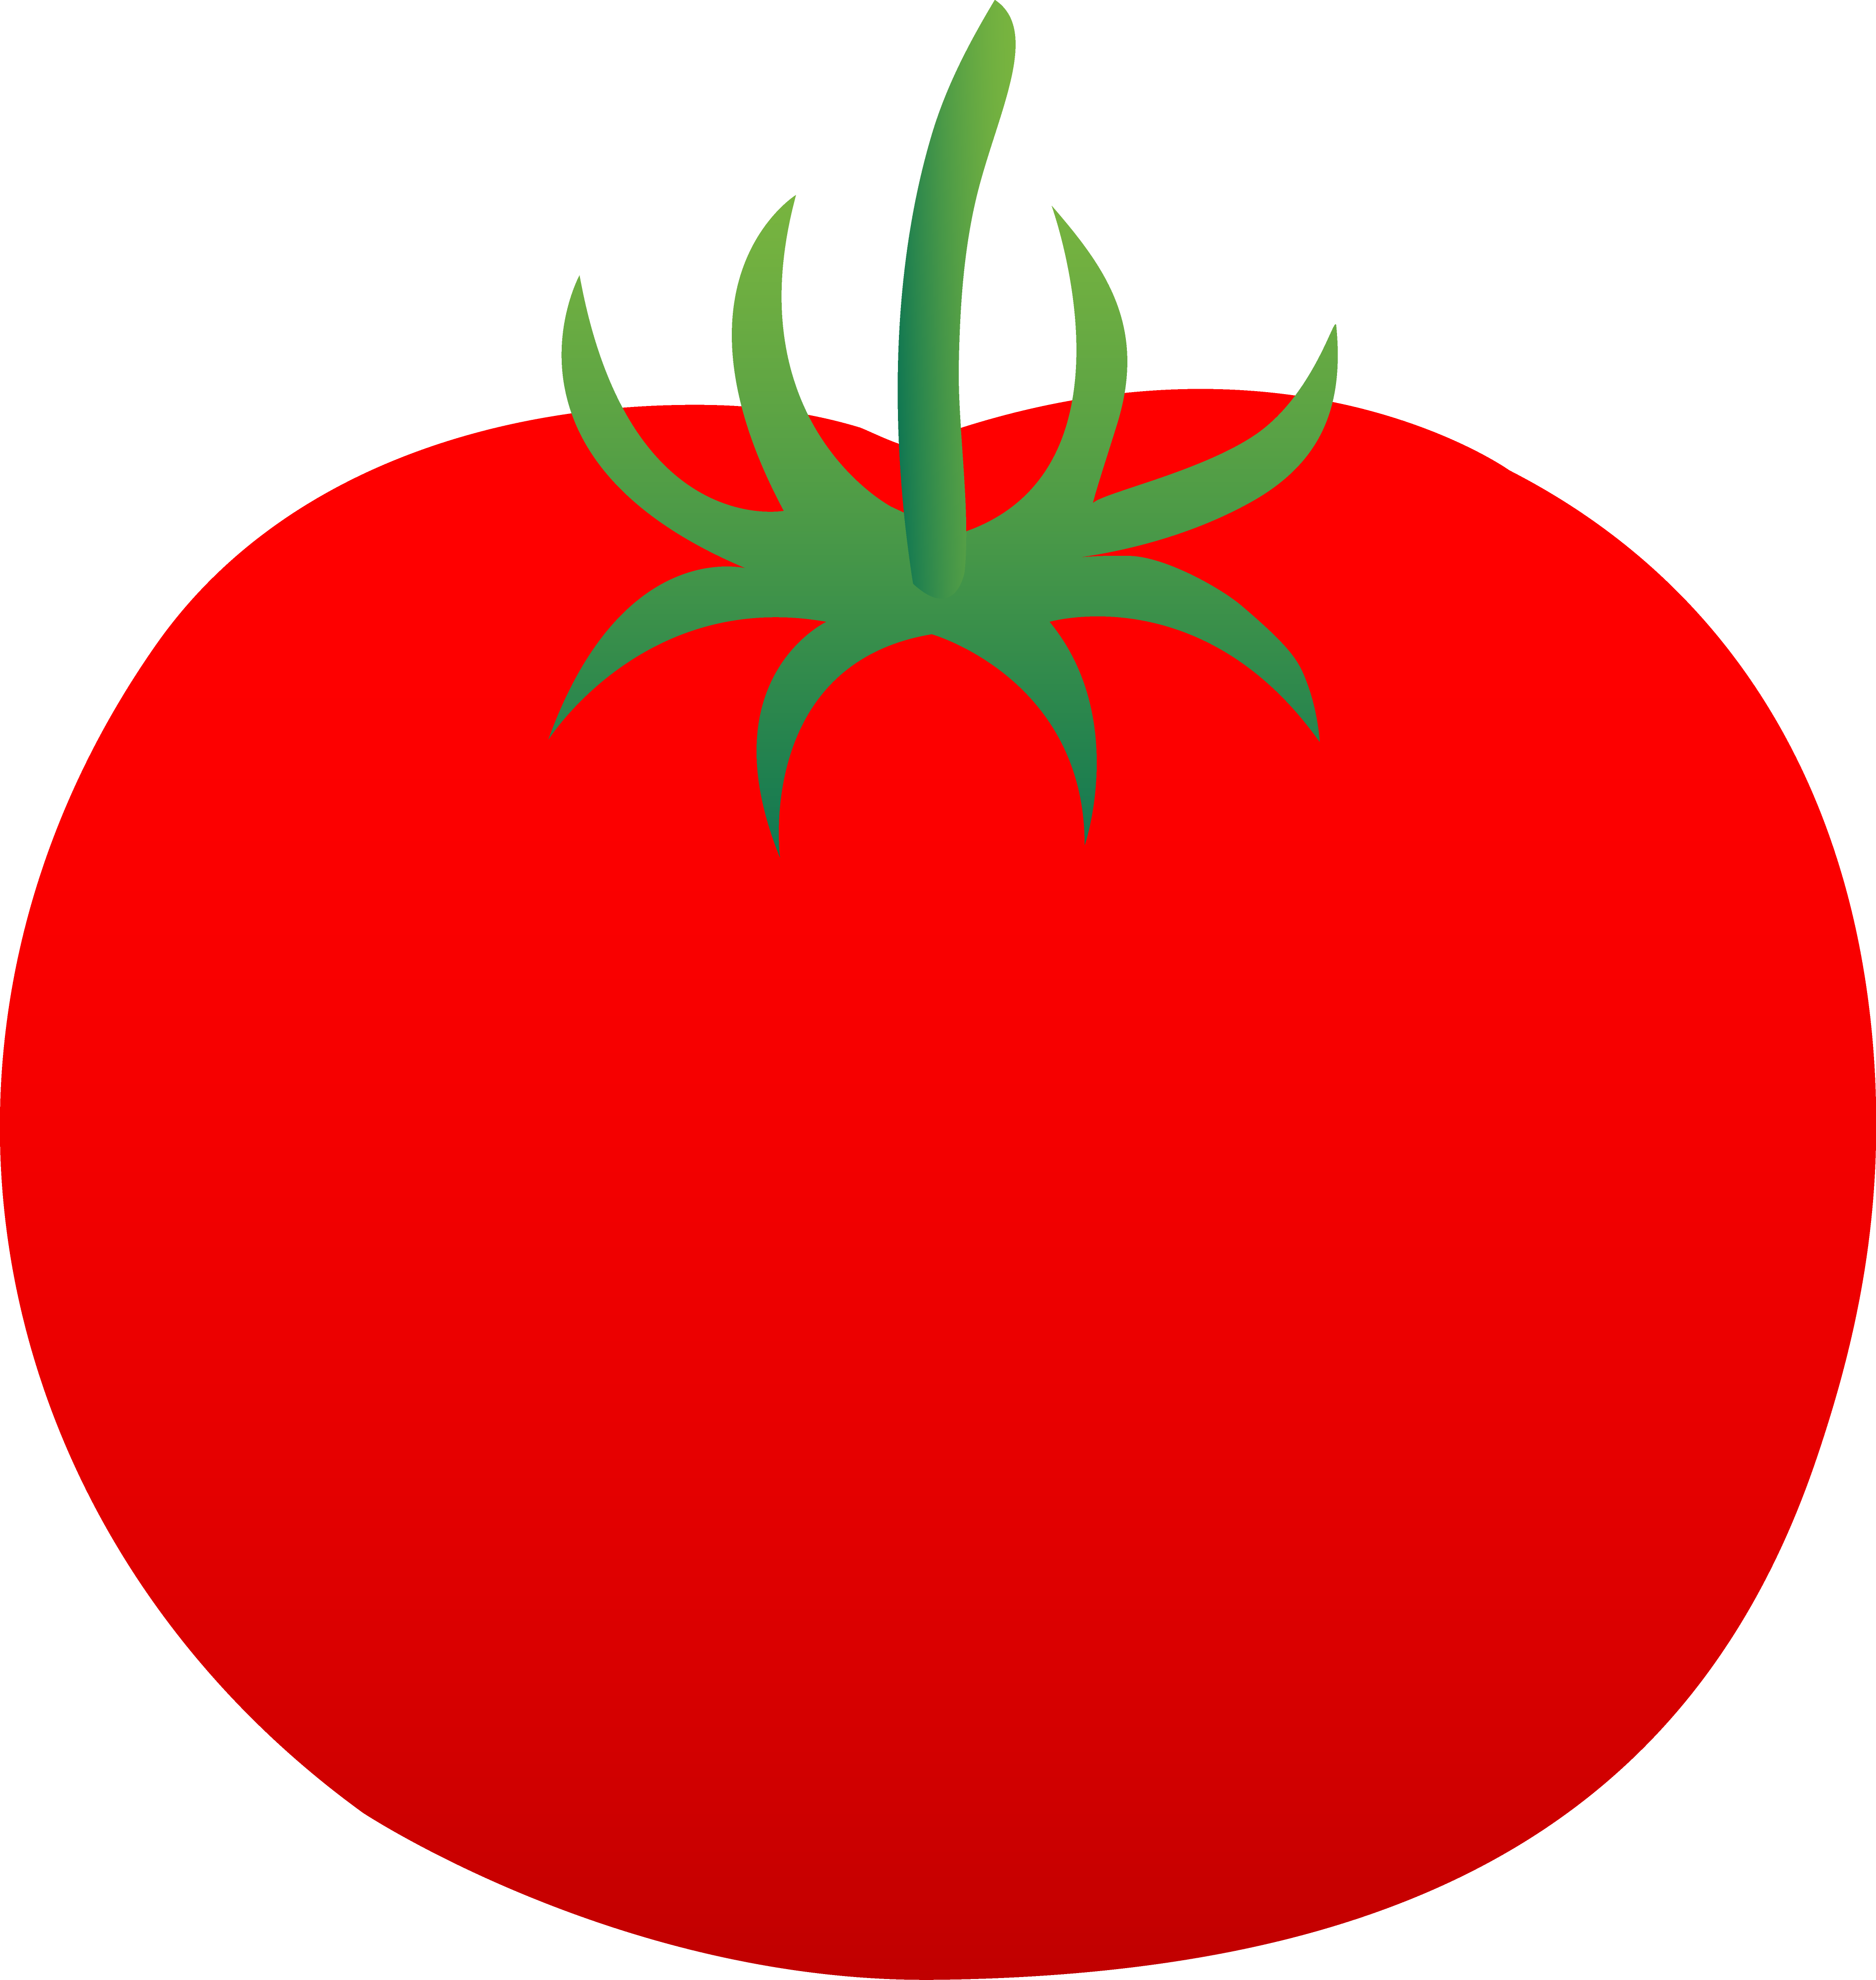 Whole Ripe Red Tomato - Free Clip Art